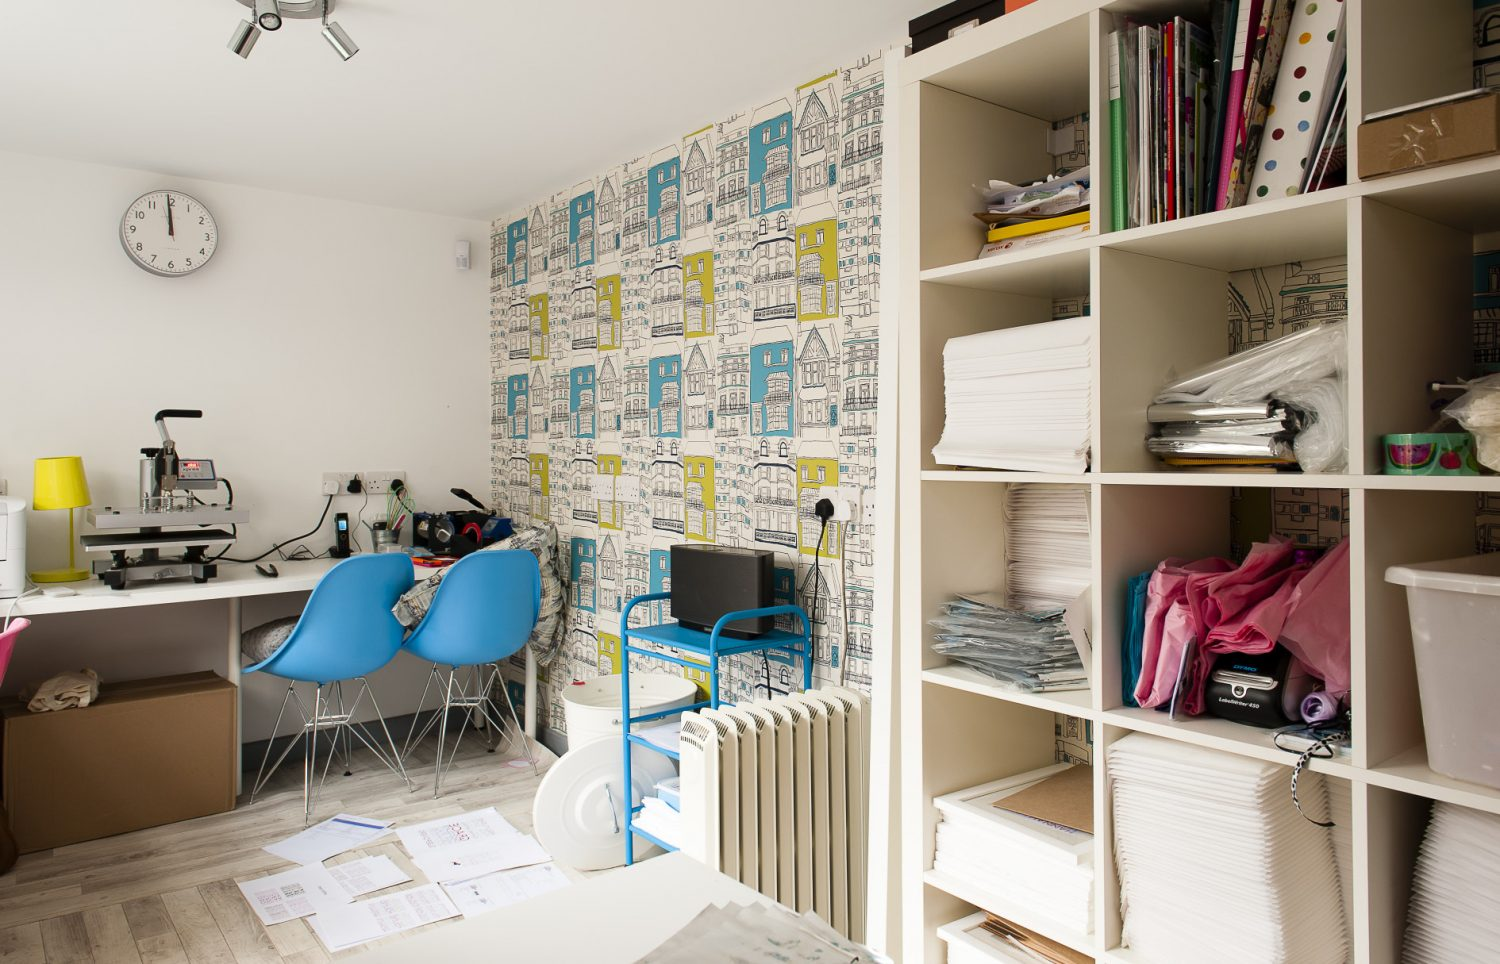 Pickle Pie Gifts HQ is set within a neatly converted garage